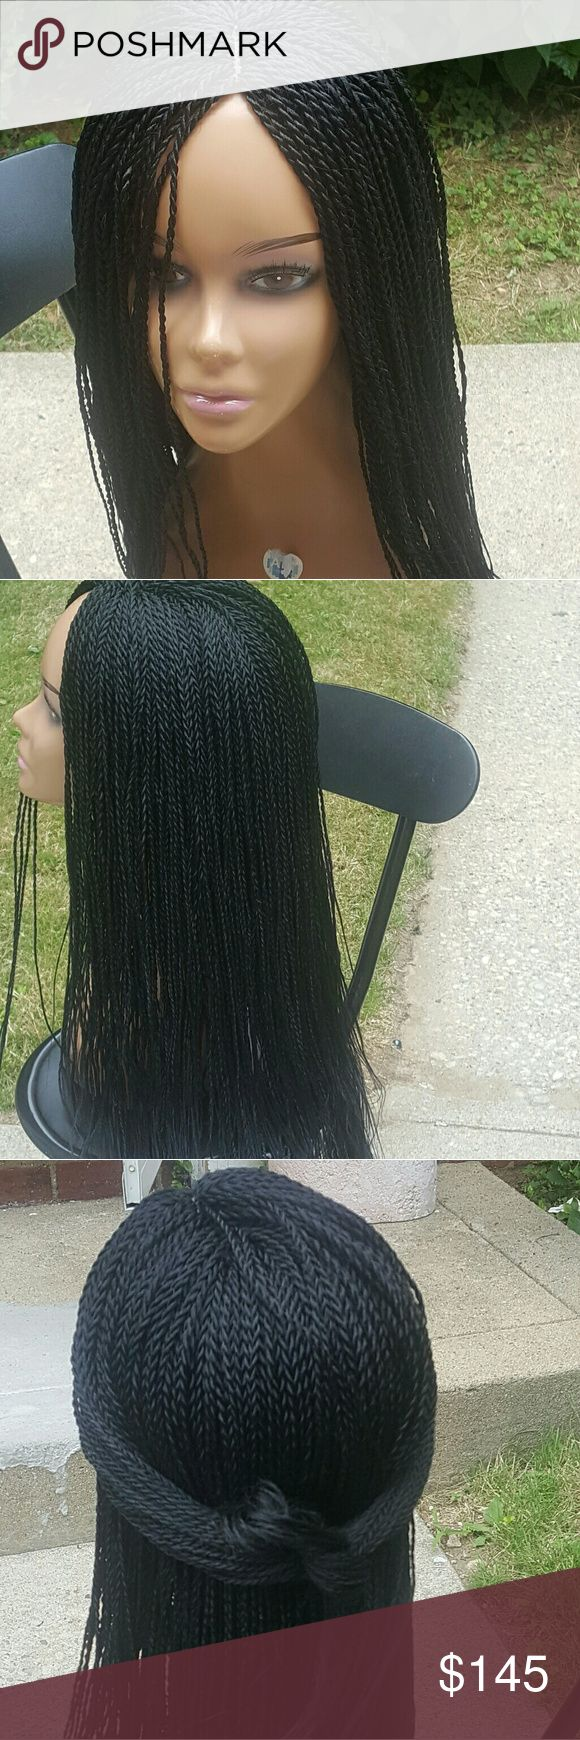 "Handmade Senegalese twist wig Handmade African Braided wig  This braided wigs perfectly for anyone that don't want to sit for long at the hairdresser. Wig can be shifted to accommodate both center of side part. Contains wig hook  Lightweight  Hair length: 24"" Color: black Other"